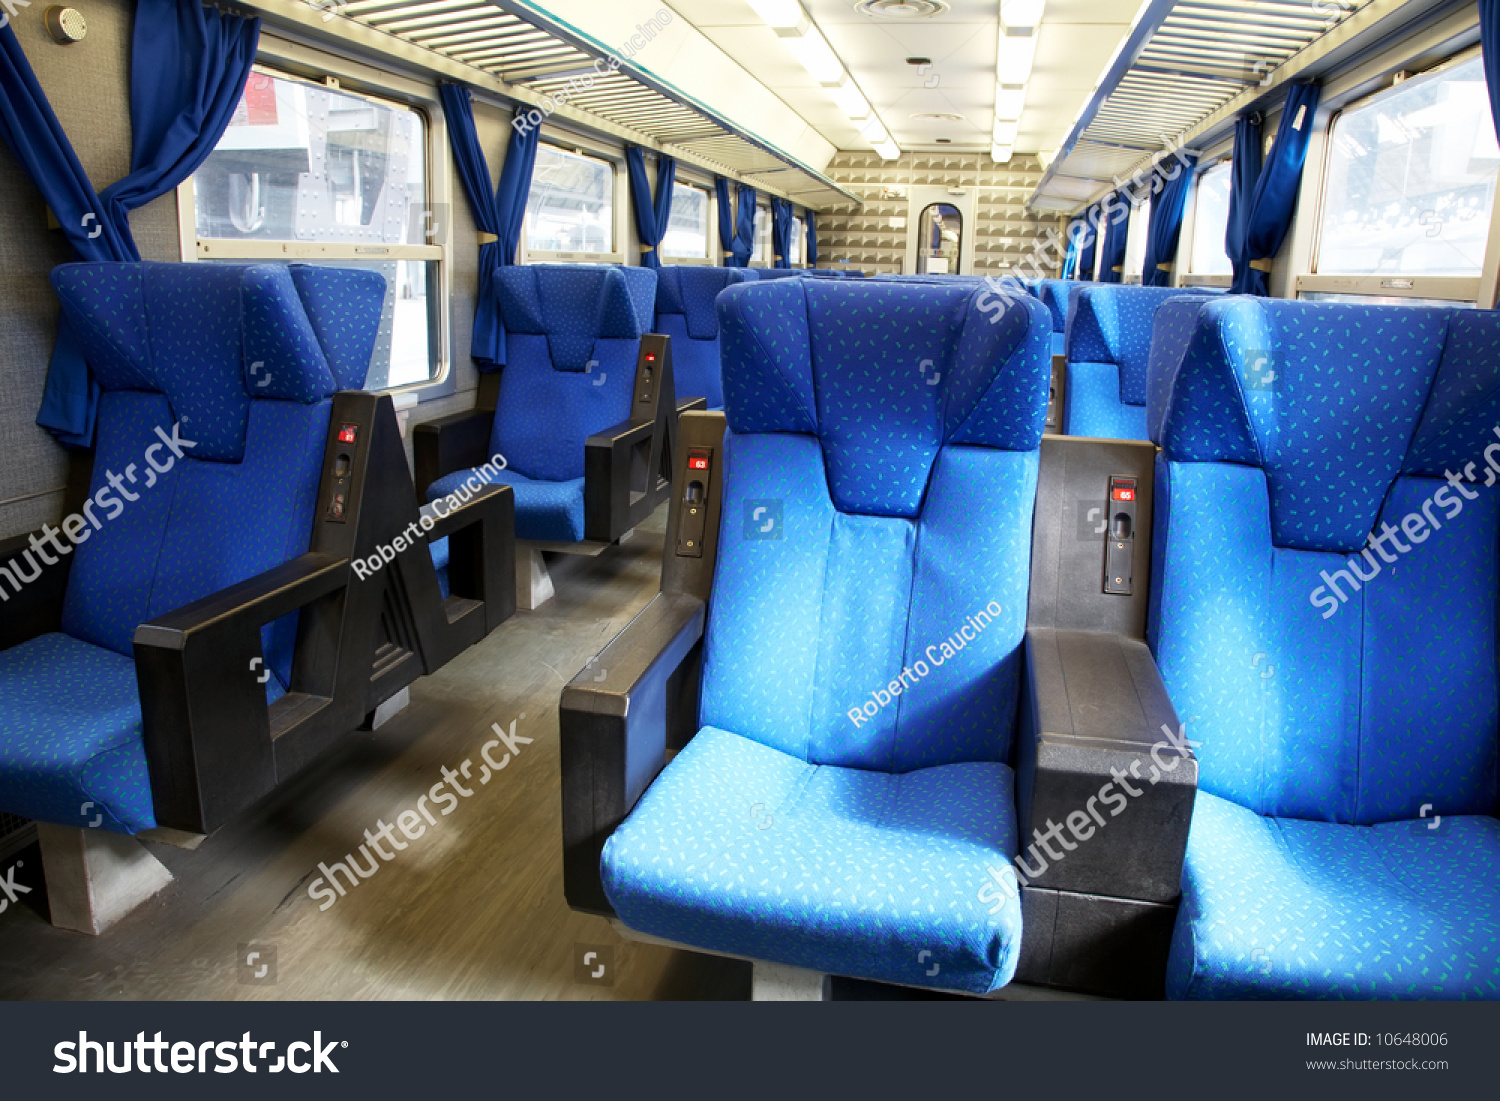 Vacant Seats Inside An Empty Passenger Train. Horizontal ...